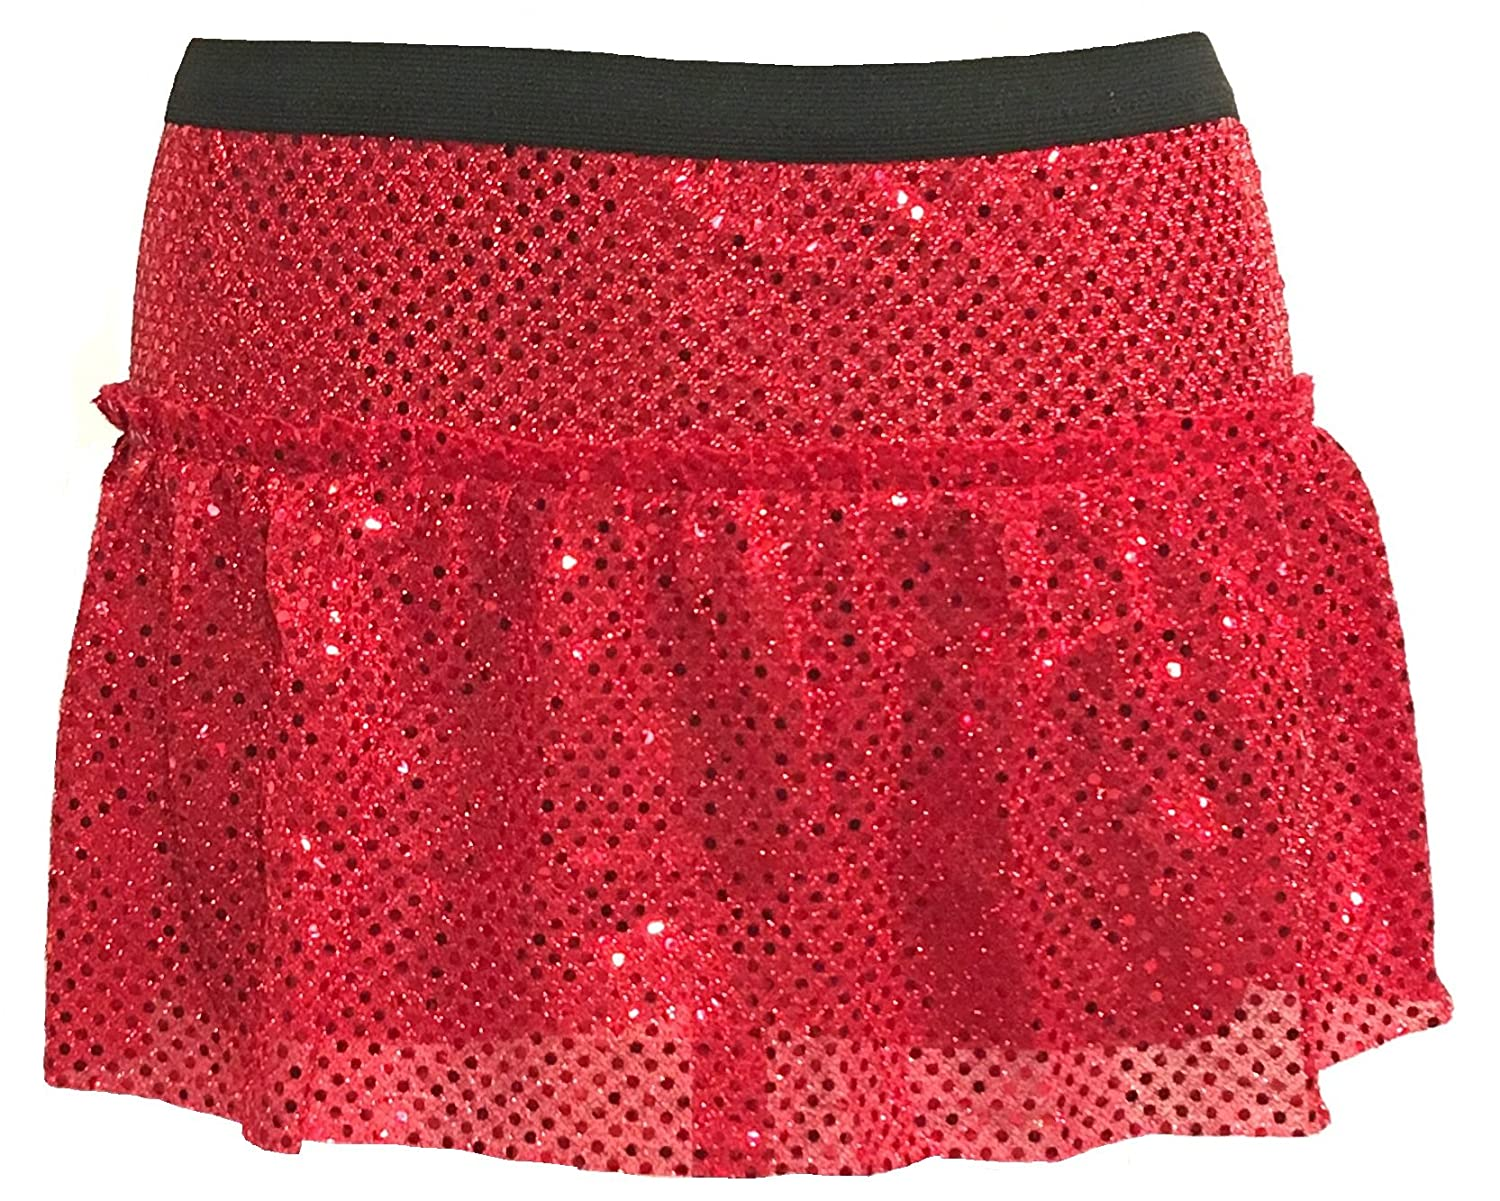 ROCK Sparkle Running Skirt | Running Tutu | Running Costume | Dance Sparkle Skirt